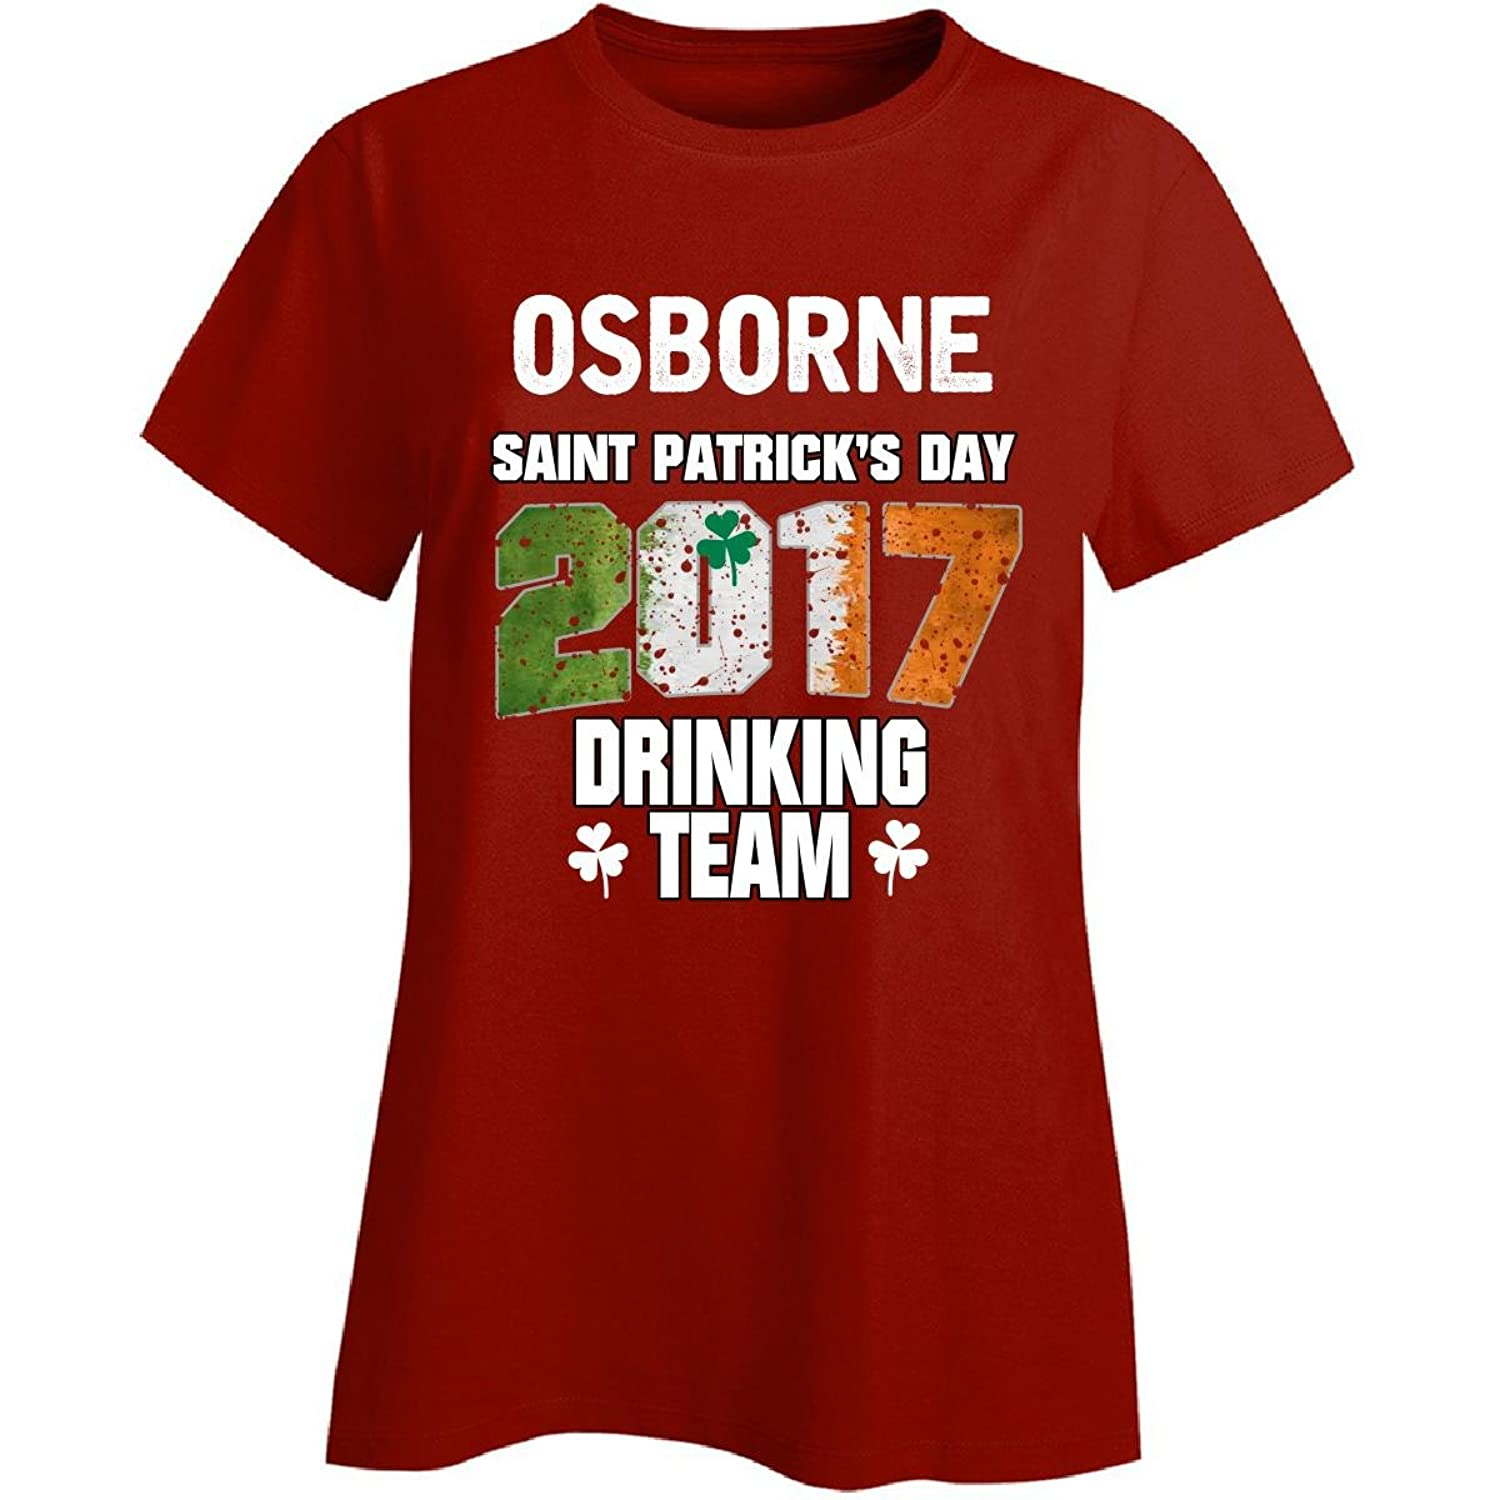 Osborne Irish St Patricks Day 2017 Drinking Team - Ladies T-shirt